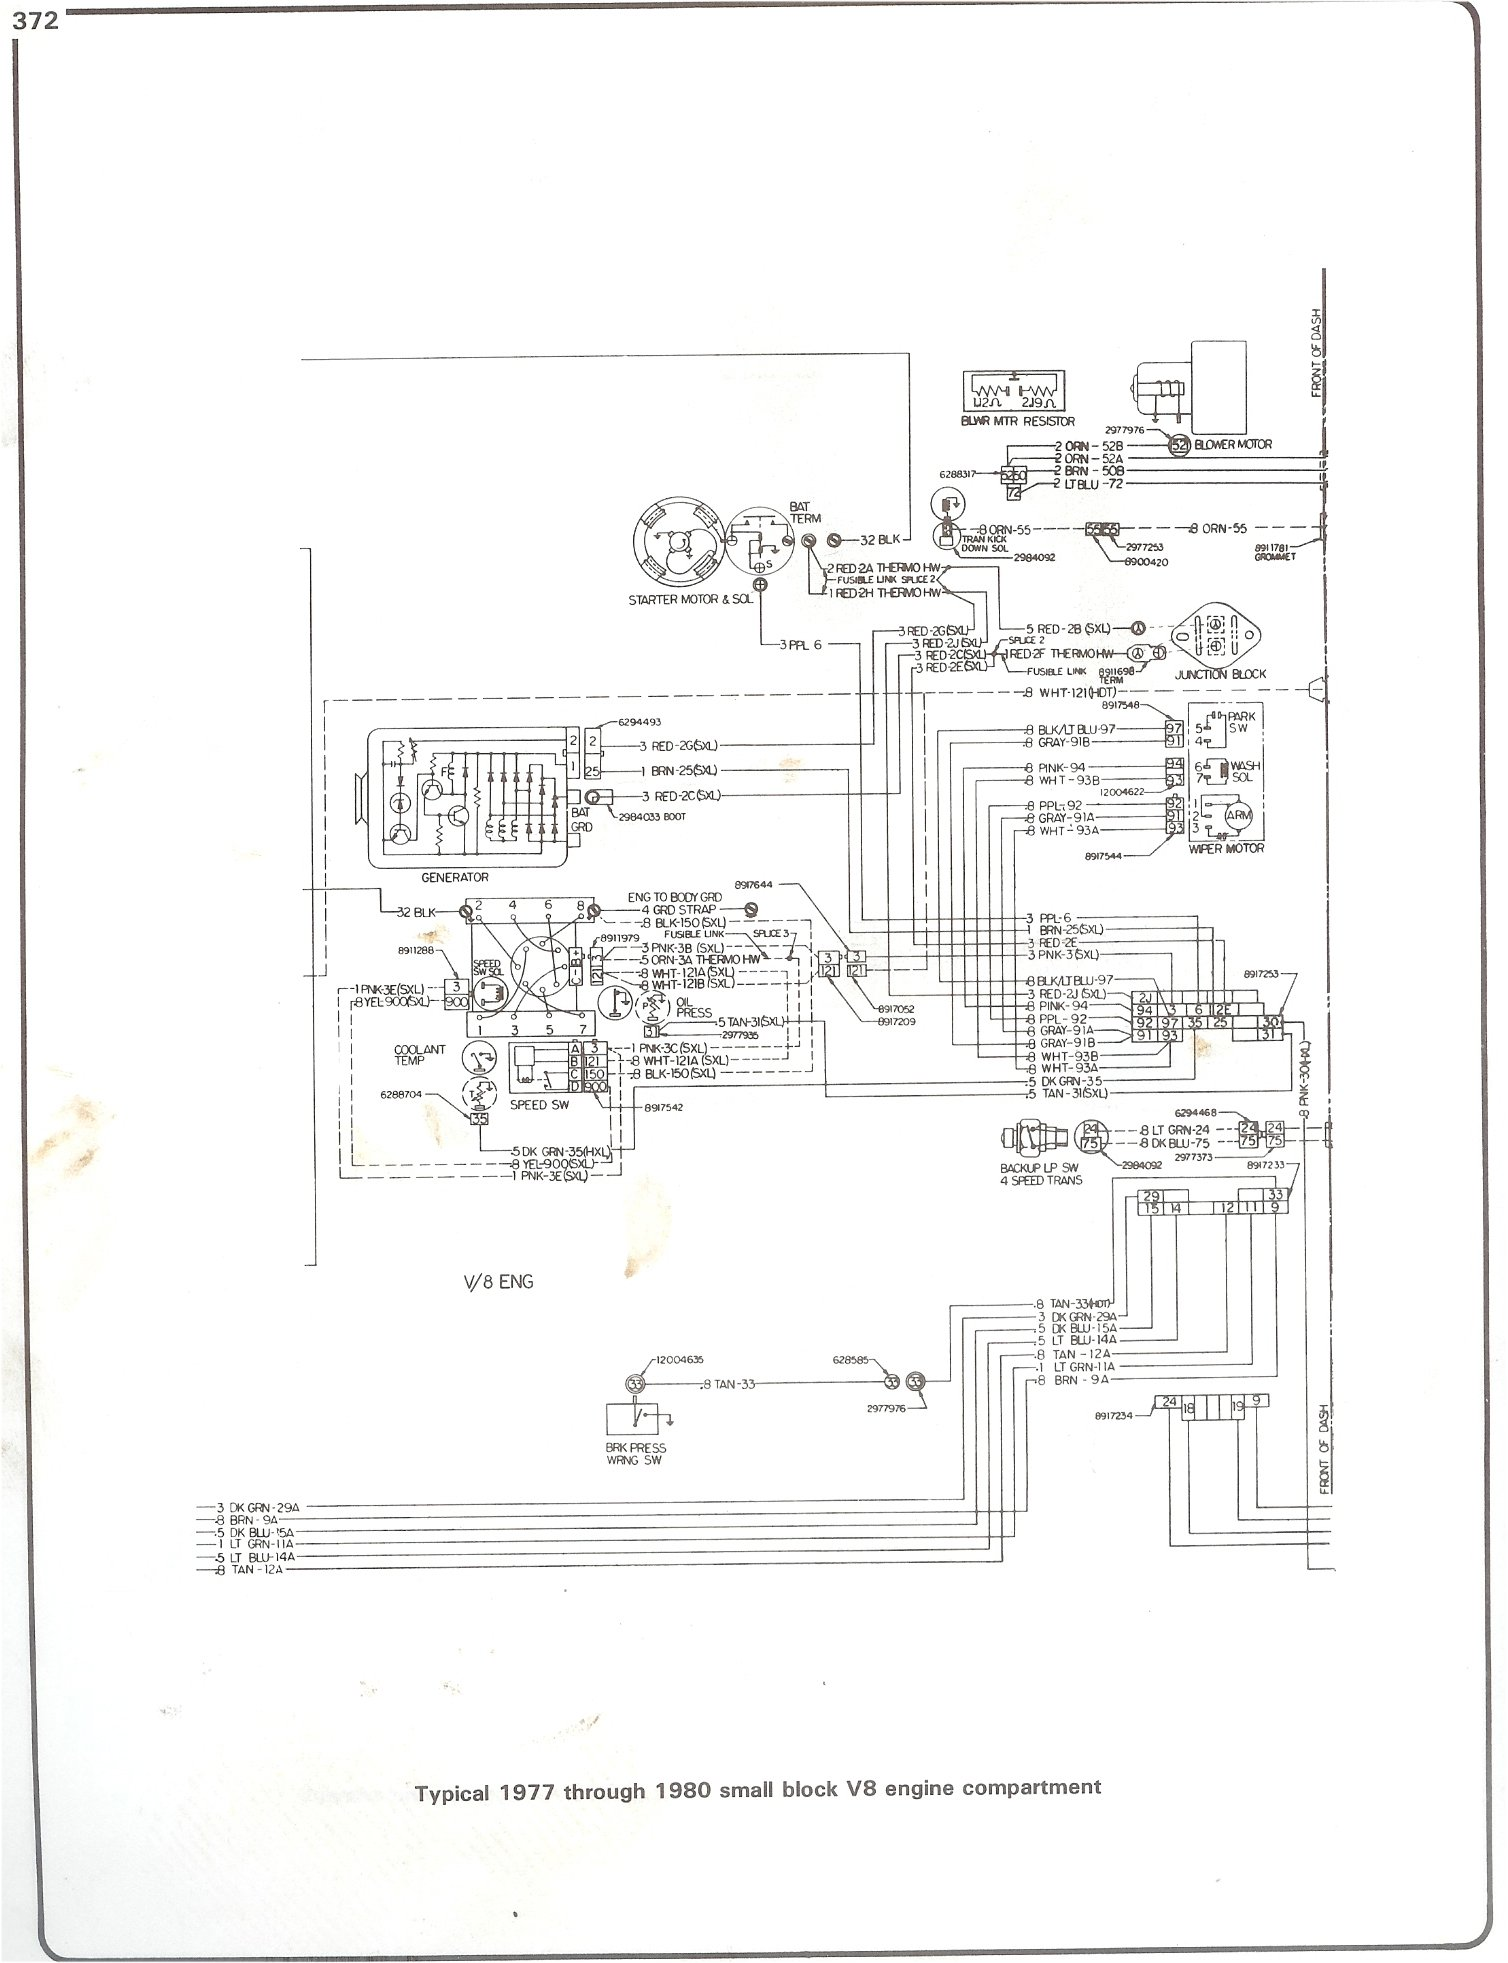 wiring diagram on chevy truck under hood